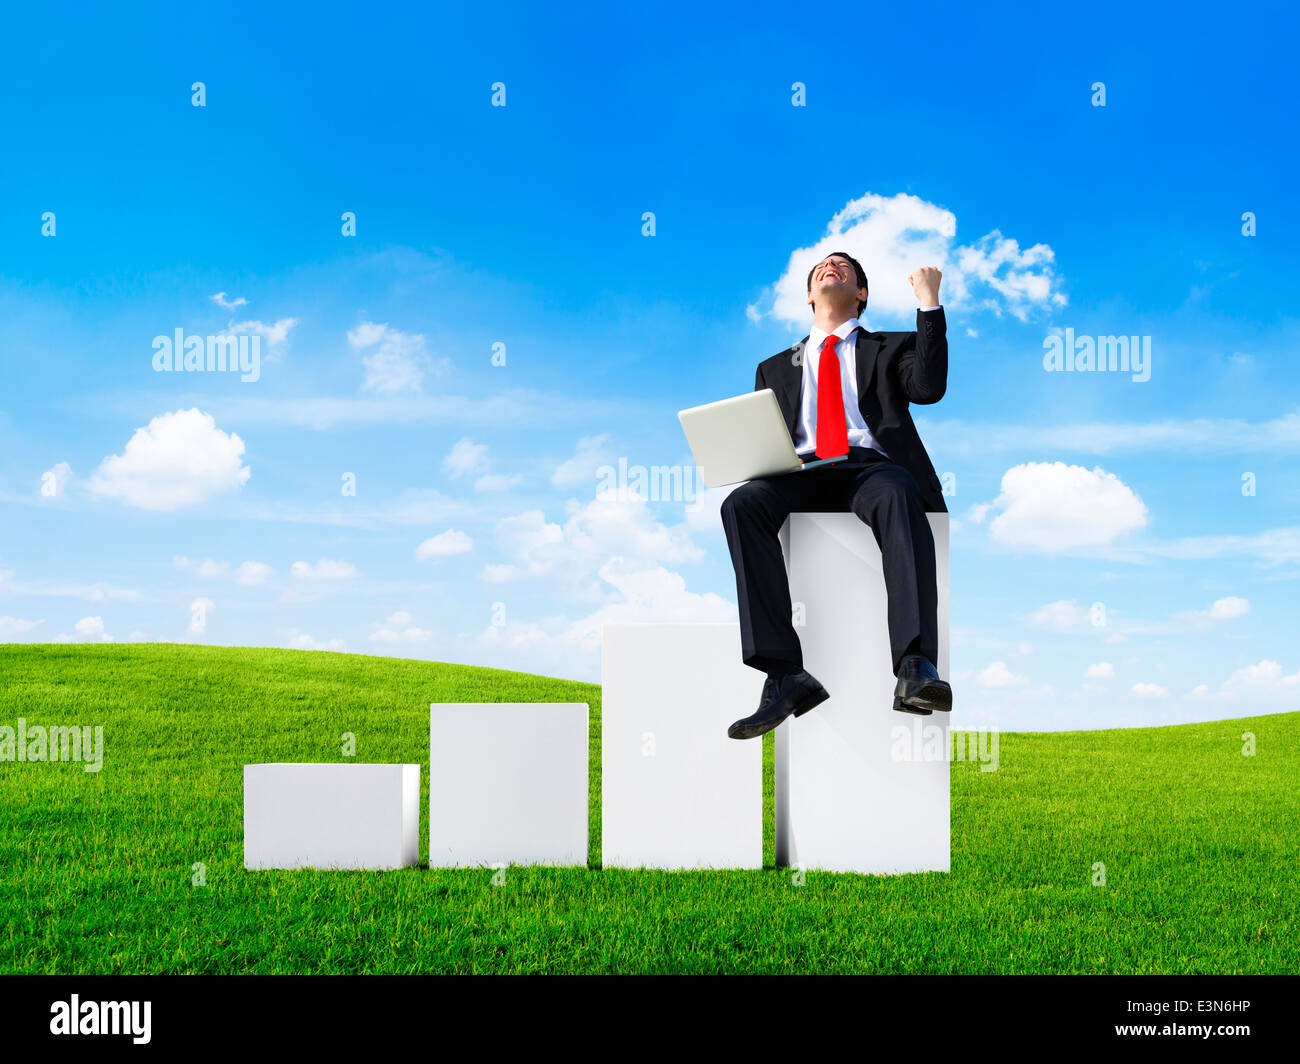 Business Man Outdoors Sitting on a Bar Graph Celebrating - Stock Image